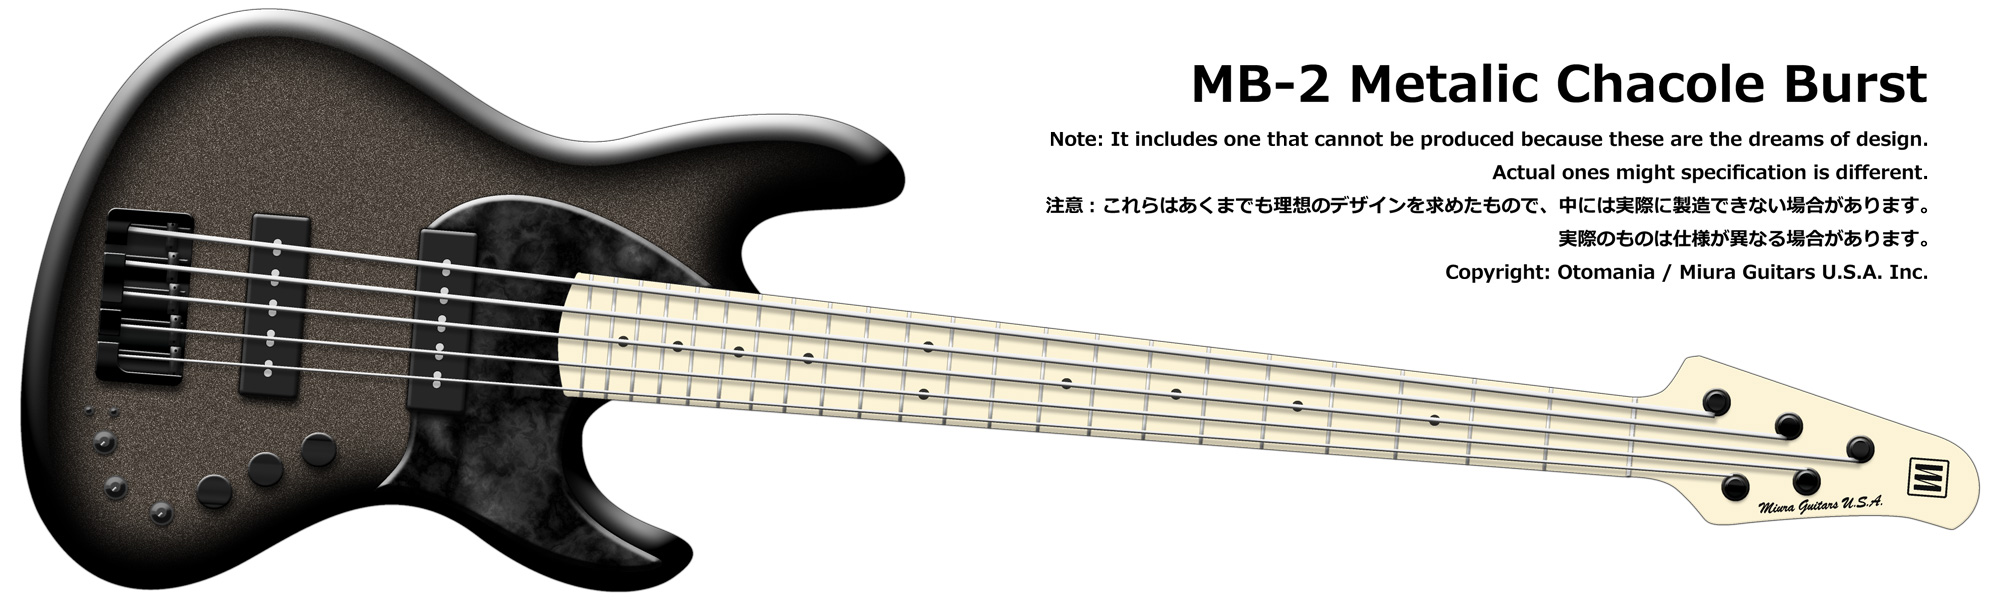 MB-2 Metalic Chacole Burst